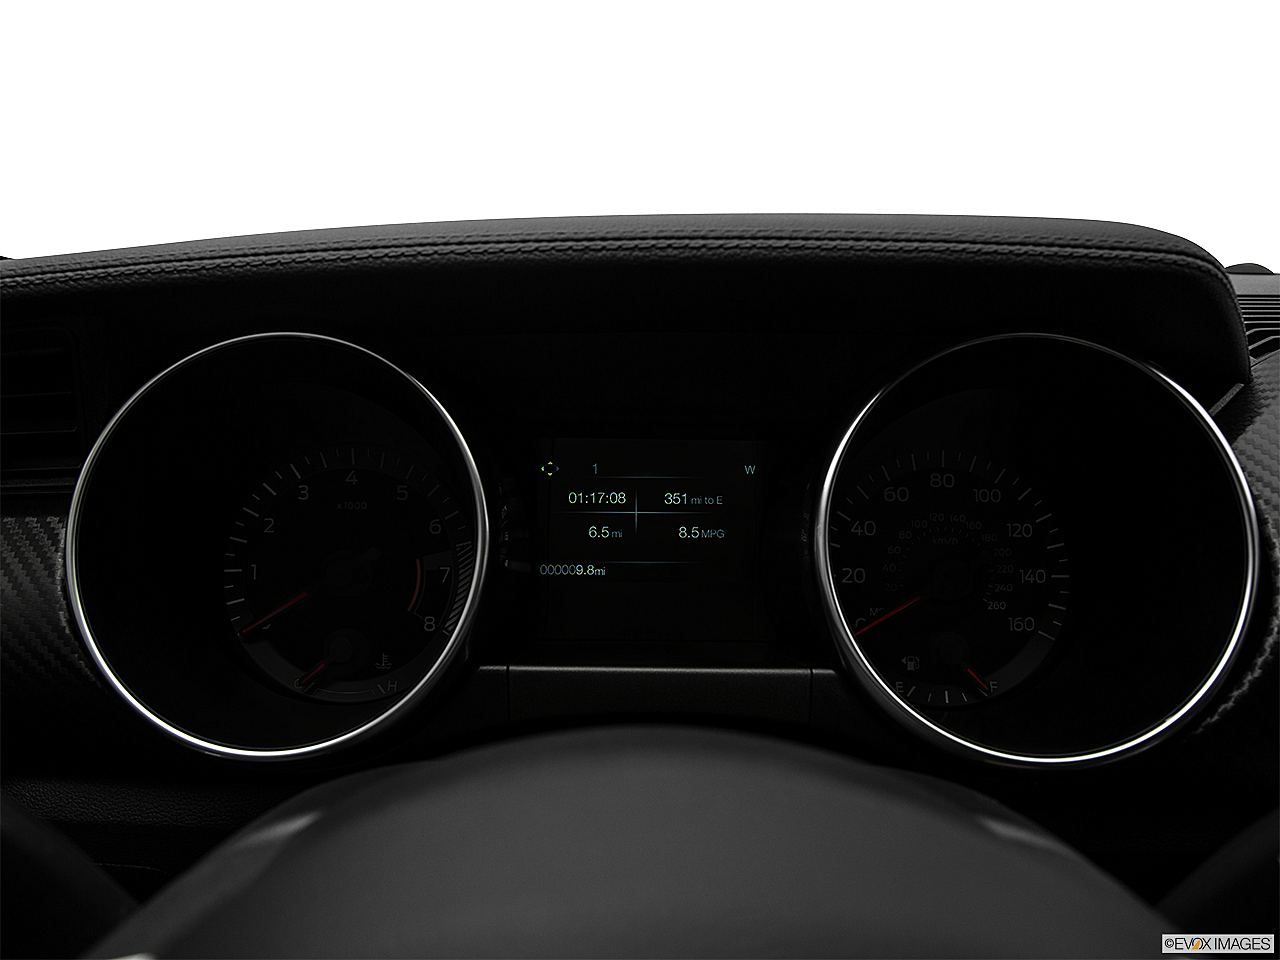 2018 Ford Mustang ECOBOOST, speedometer/tachometer.